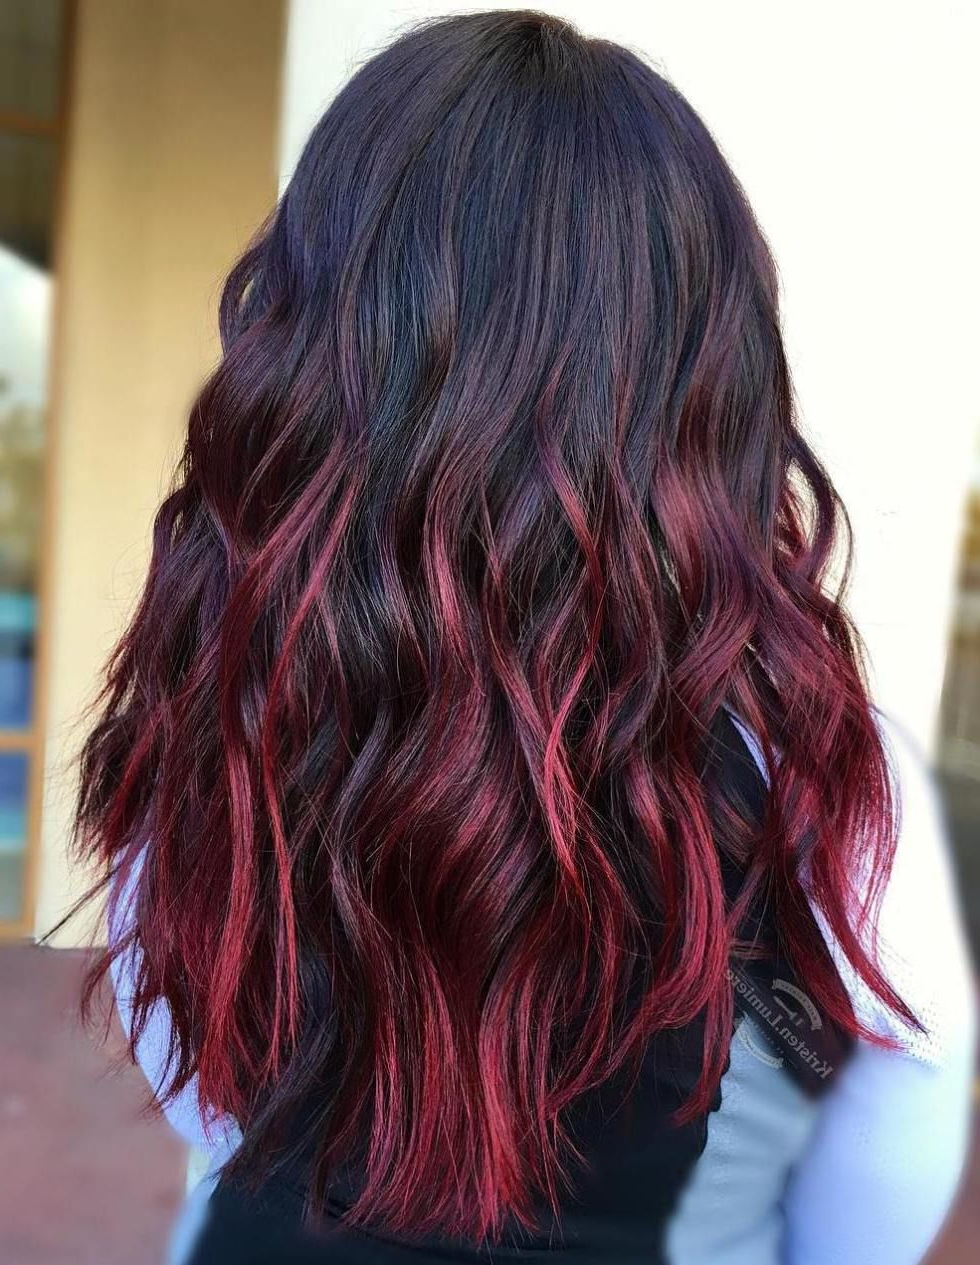 45 Shades Of Burgundy Hair: Dark Burgundy, Maroon, Burgundy With Red With Fashionable Red And Black Medium Hairstyles (Gallery 6 of 20)